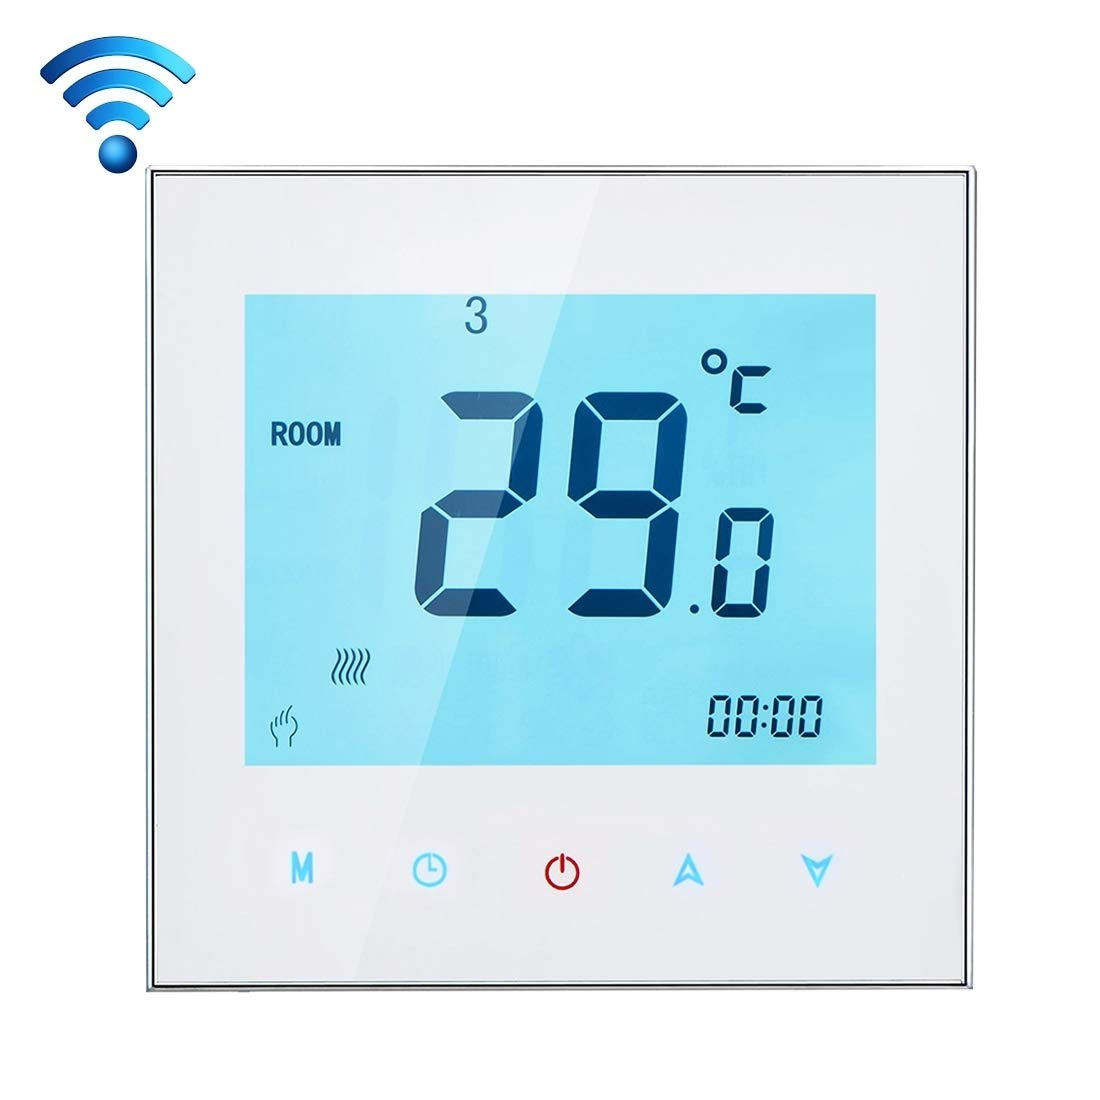 BuyBuyBuy Precision BHT-1000-GA-WIFI 3A Multifunction Load Water Heating Type Touch LCD Digital WiFi Heating Room Thermostat, Display Clock/Temperature/Periods/Time/Week/Heat etc. Standard